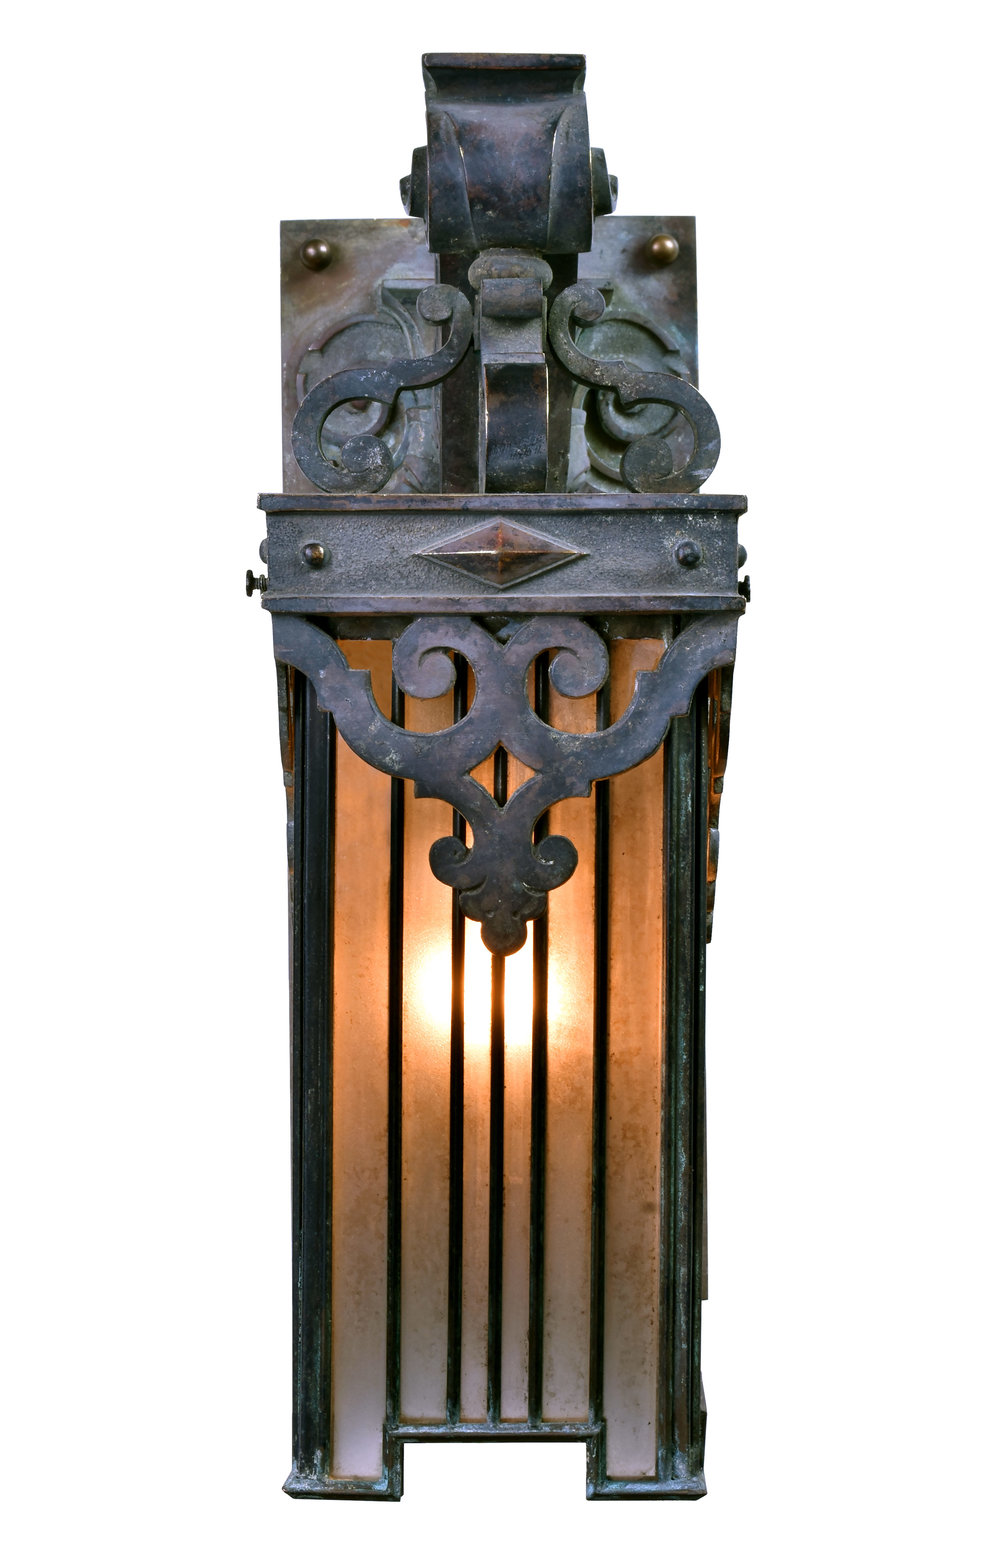 47236-cast-bronze-sconce-with-lead-shade-lit-up-front.jpg